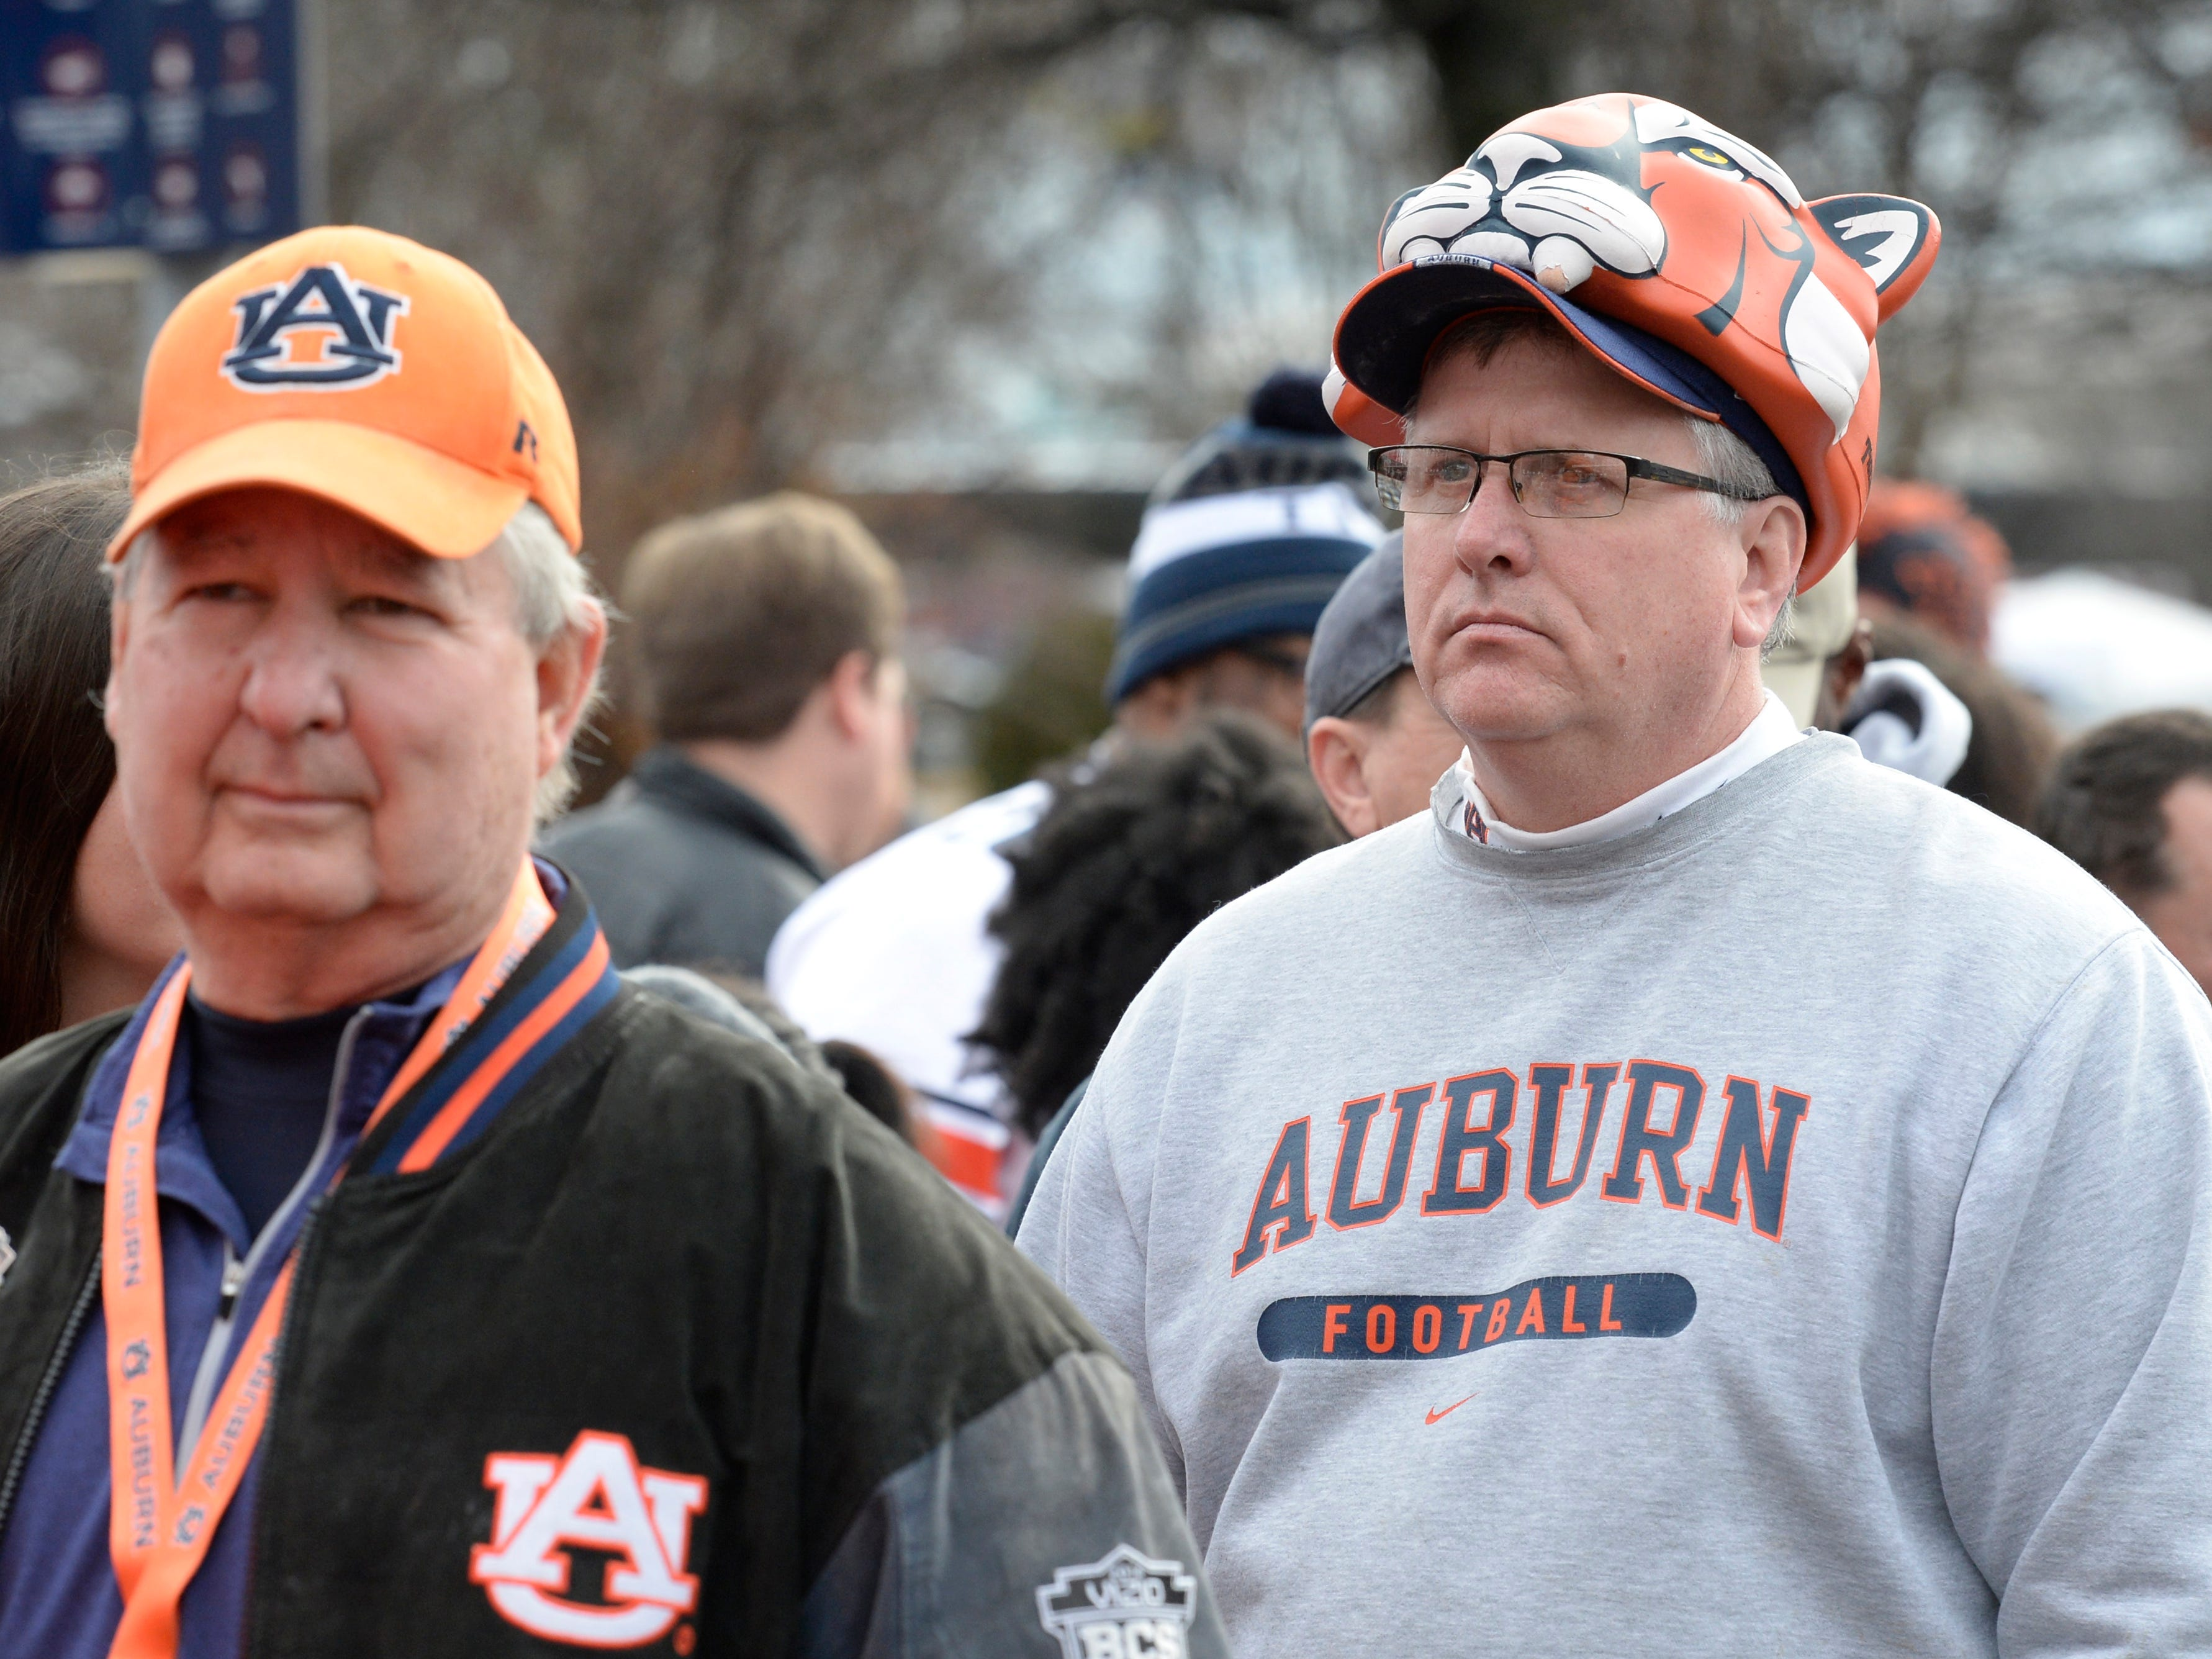 Auburn fans -- complete with Tigers gear -- wait in line to get in for the start of the Music City Bowl NCAA college football game Friday, Dec. 28, 2018, at Nissan Stadium in Nashville, Tenn.